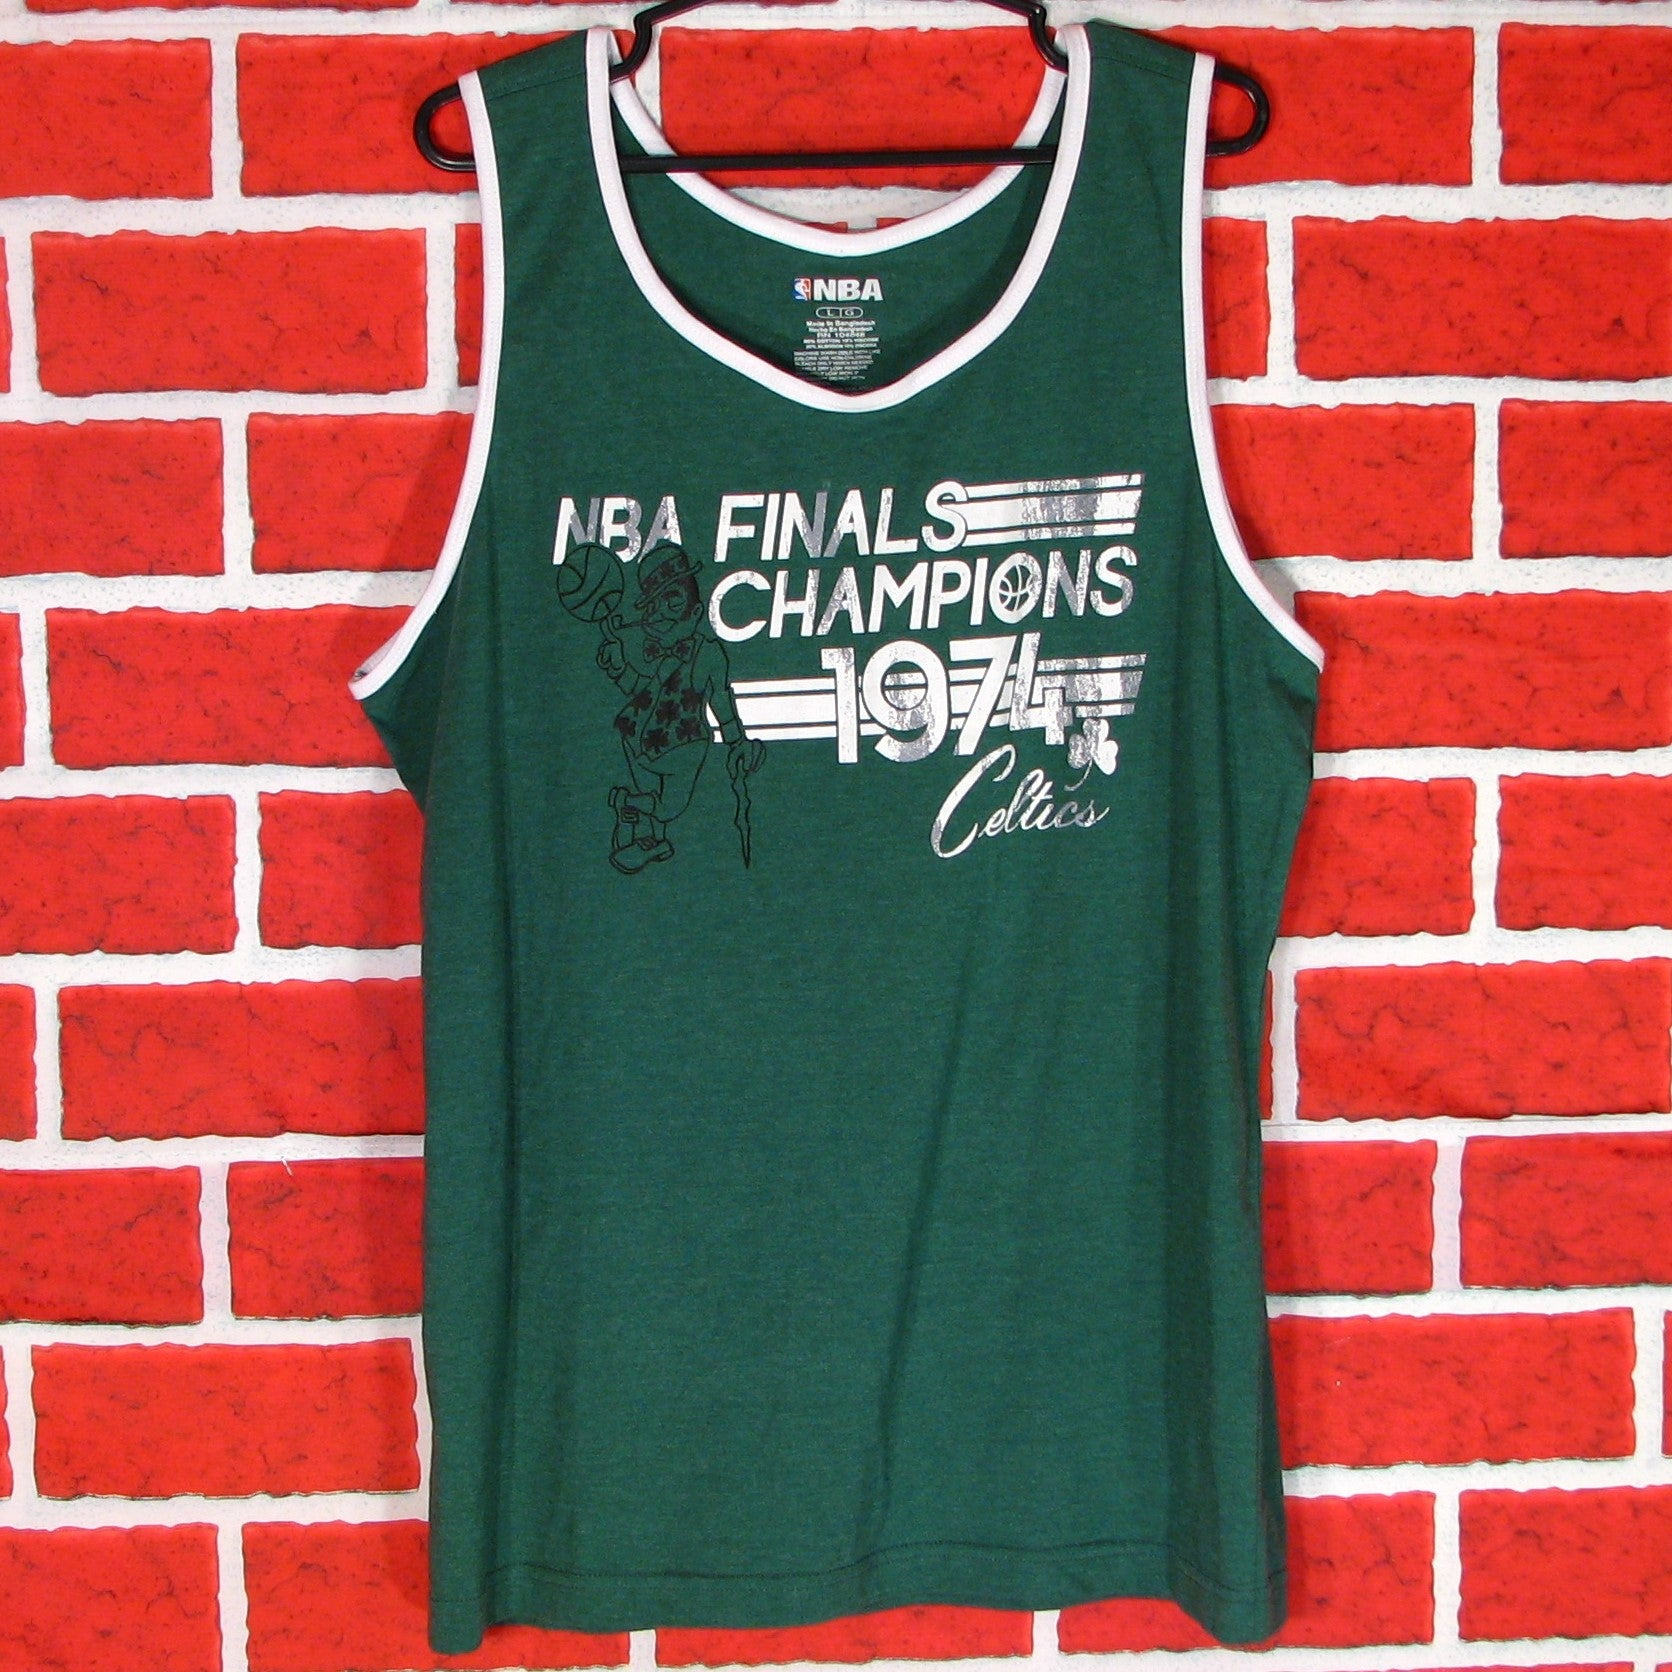 Boston Celtics NBA FInals Champions 1974